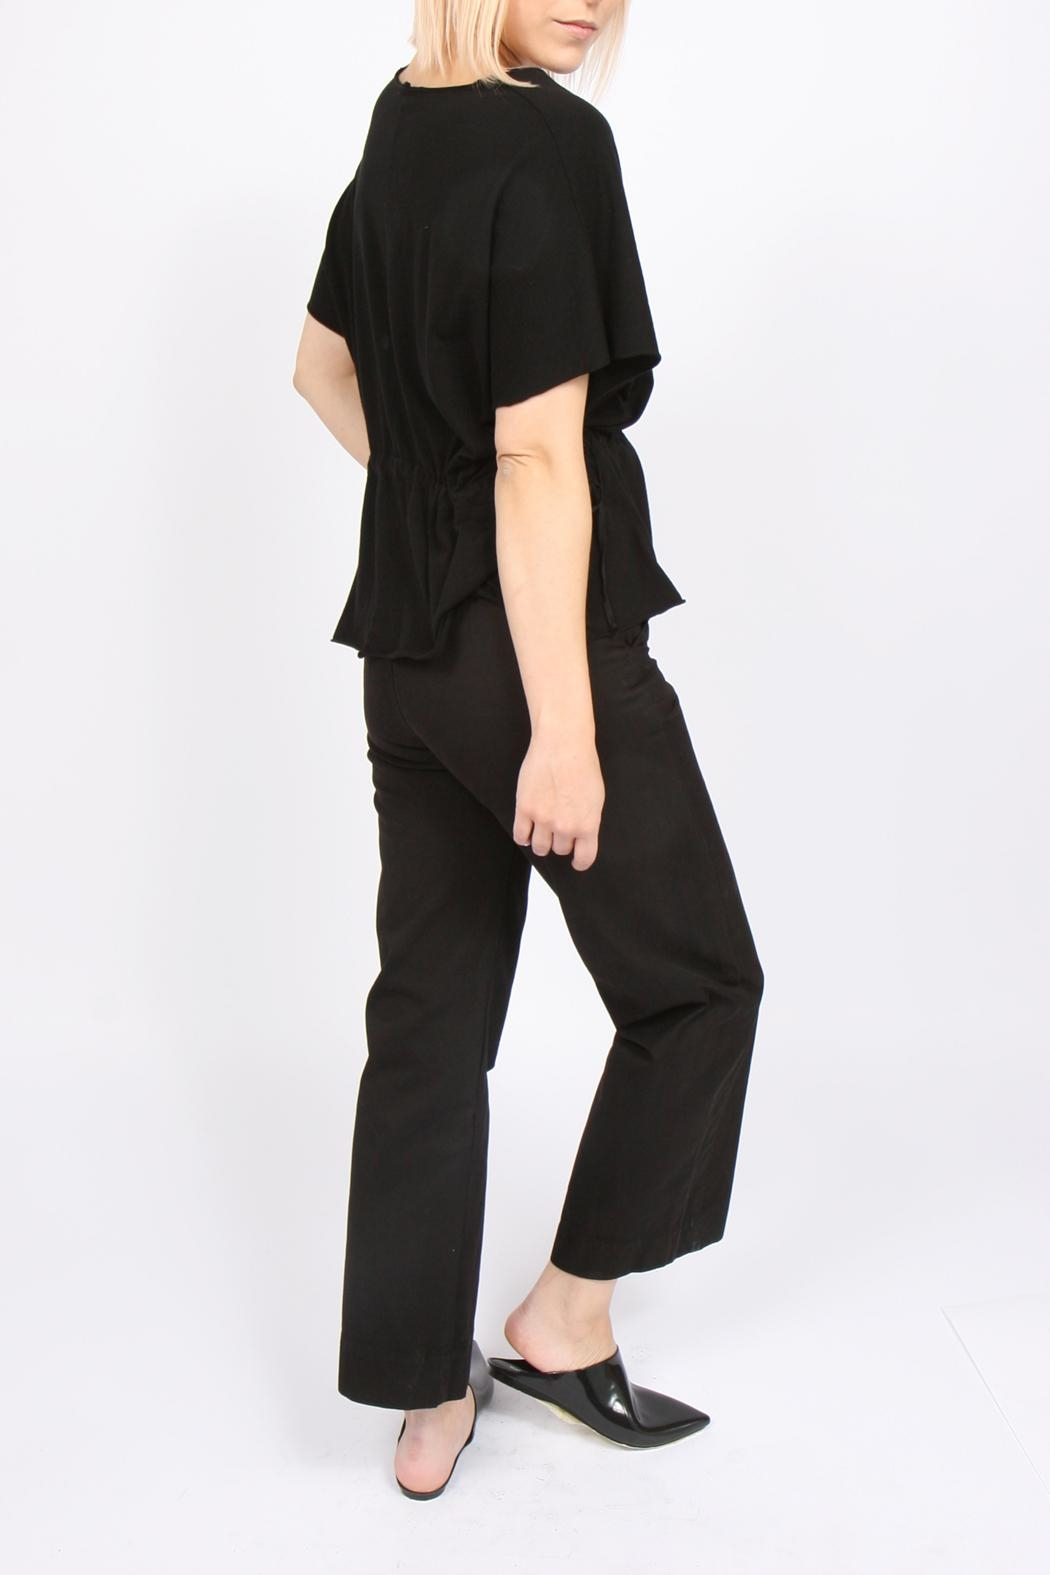 Errant Ava Drawstring Top - Side Cropped Image